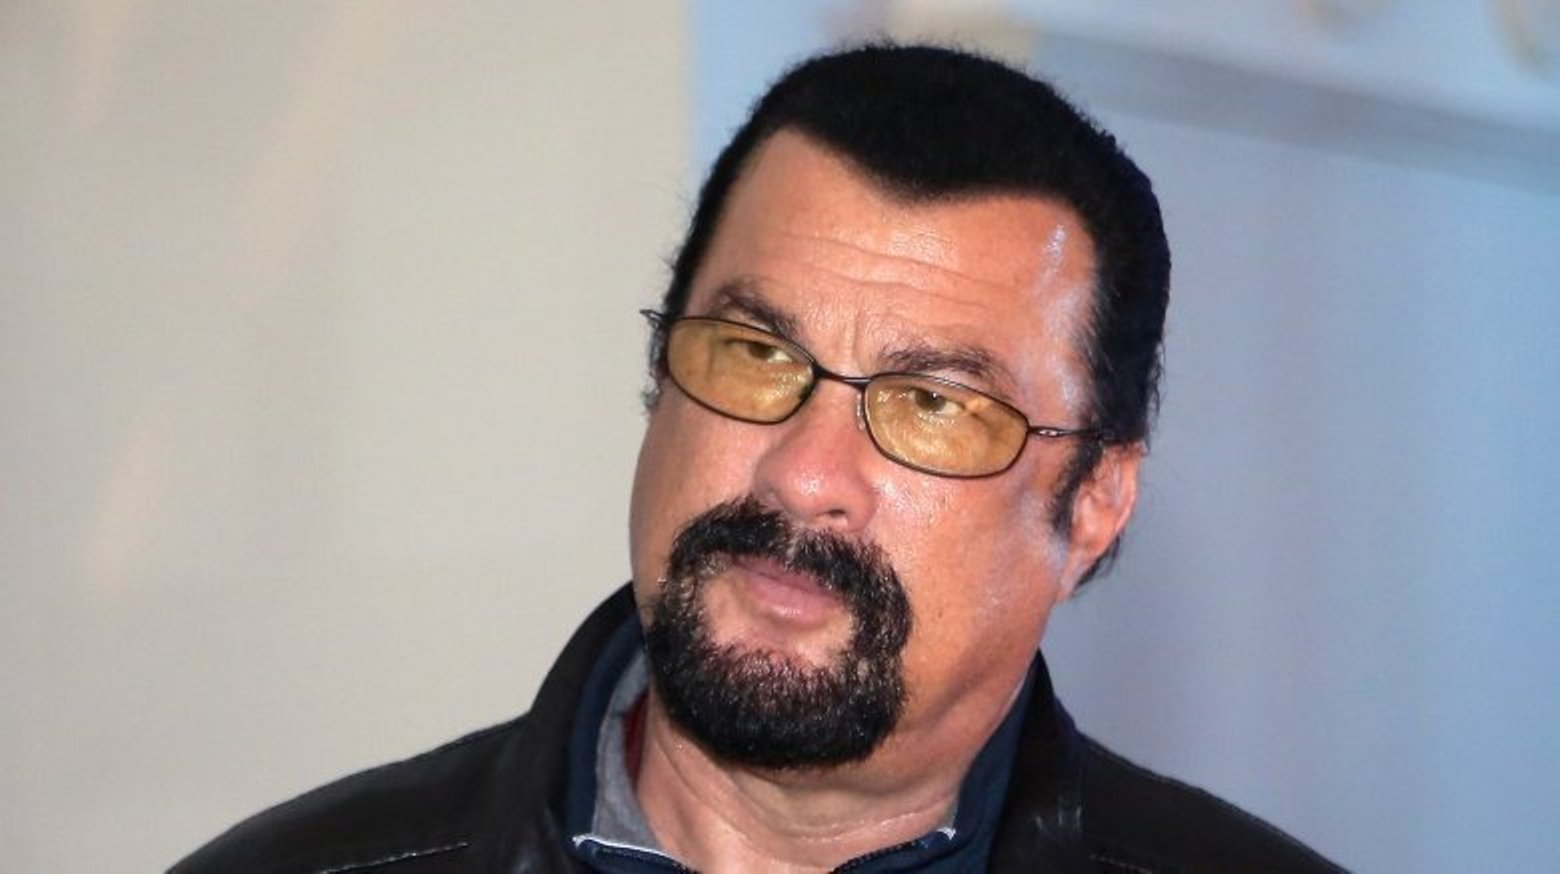 Steven Seagal Charged In Bitcoin Case By the SEC